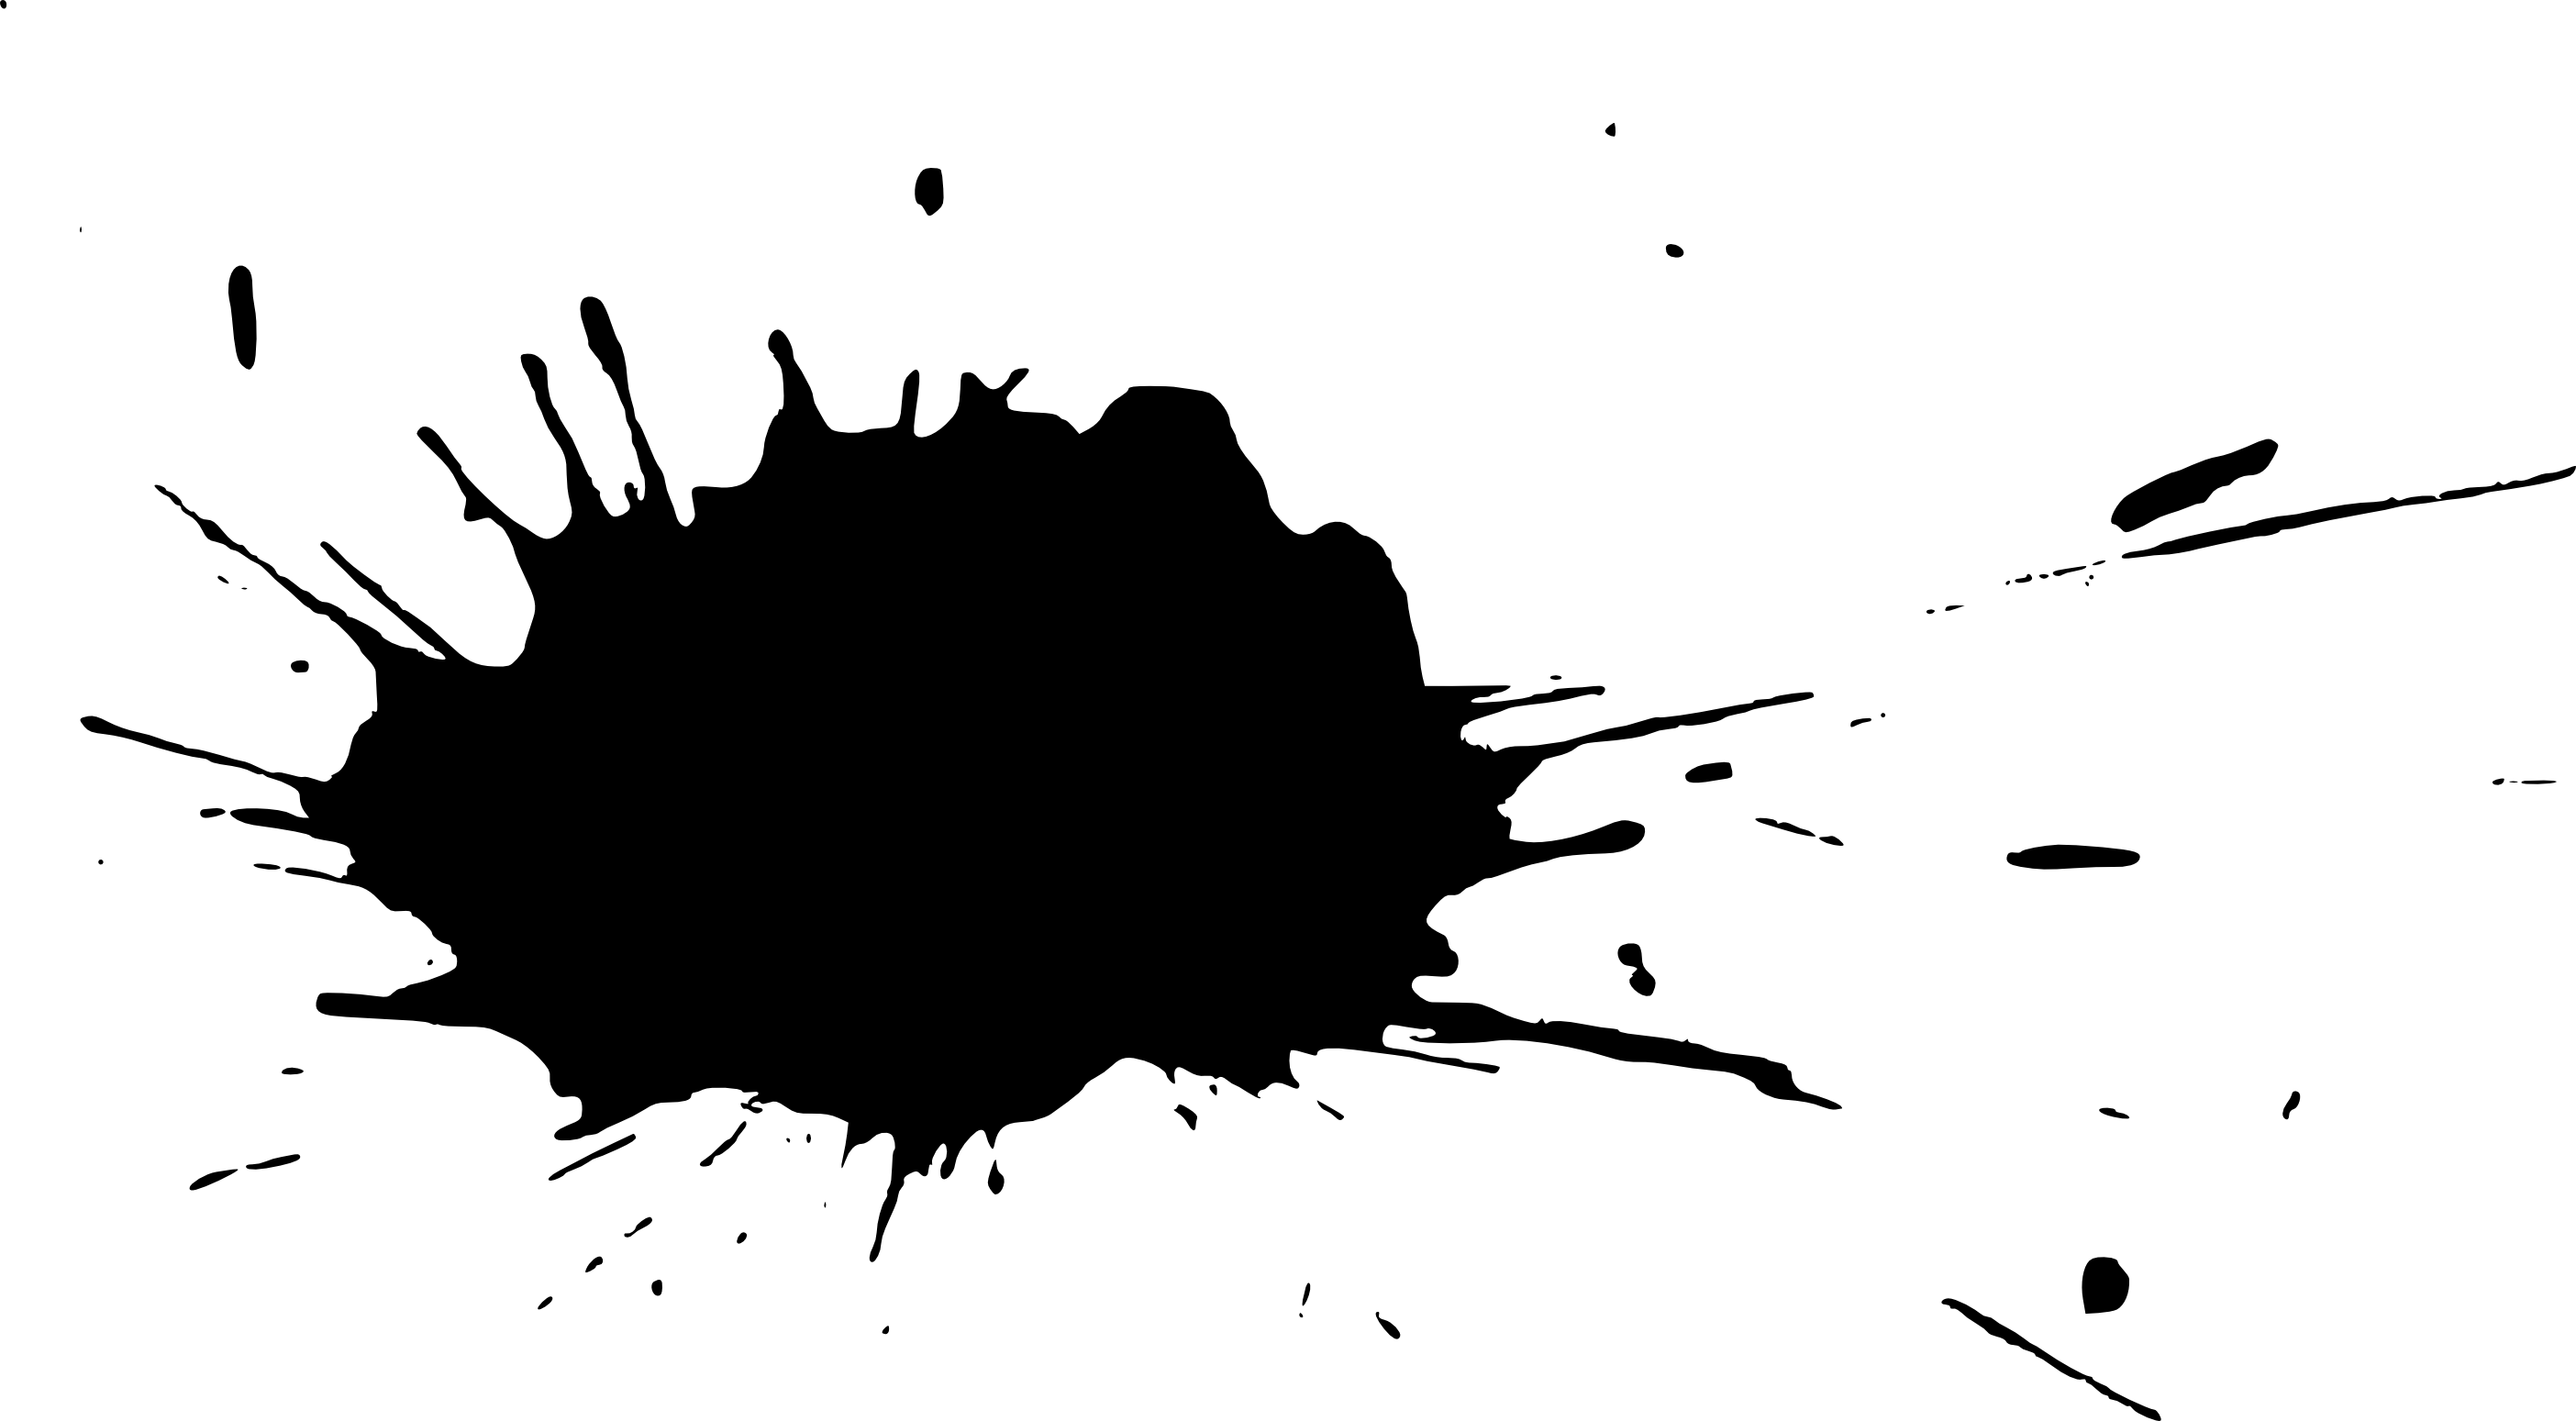 19 Black Paint Splatters (PNG Transparent) Vol. 2 ...